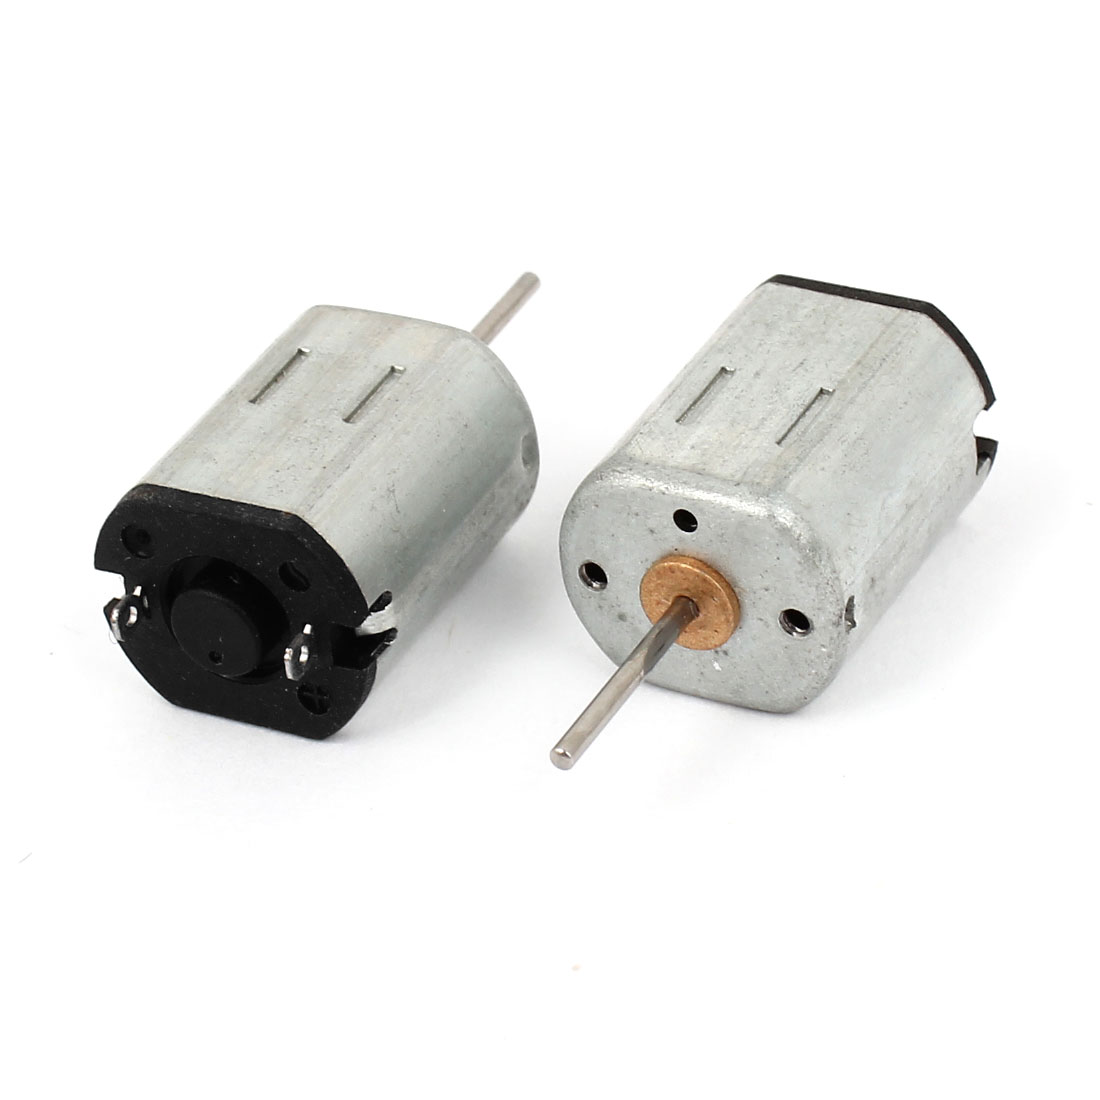 2pcs DC 1.5V-6V 26500RPM Micro Motor N20 for Aircraft Airplanes Helicopter RC DIY Toys